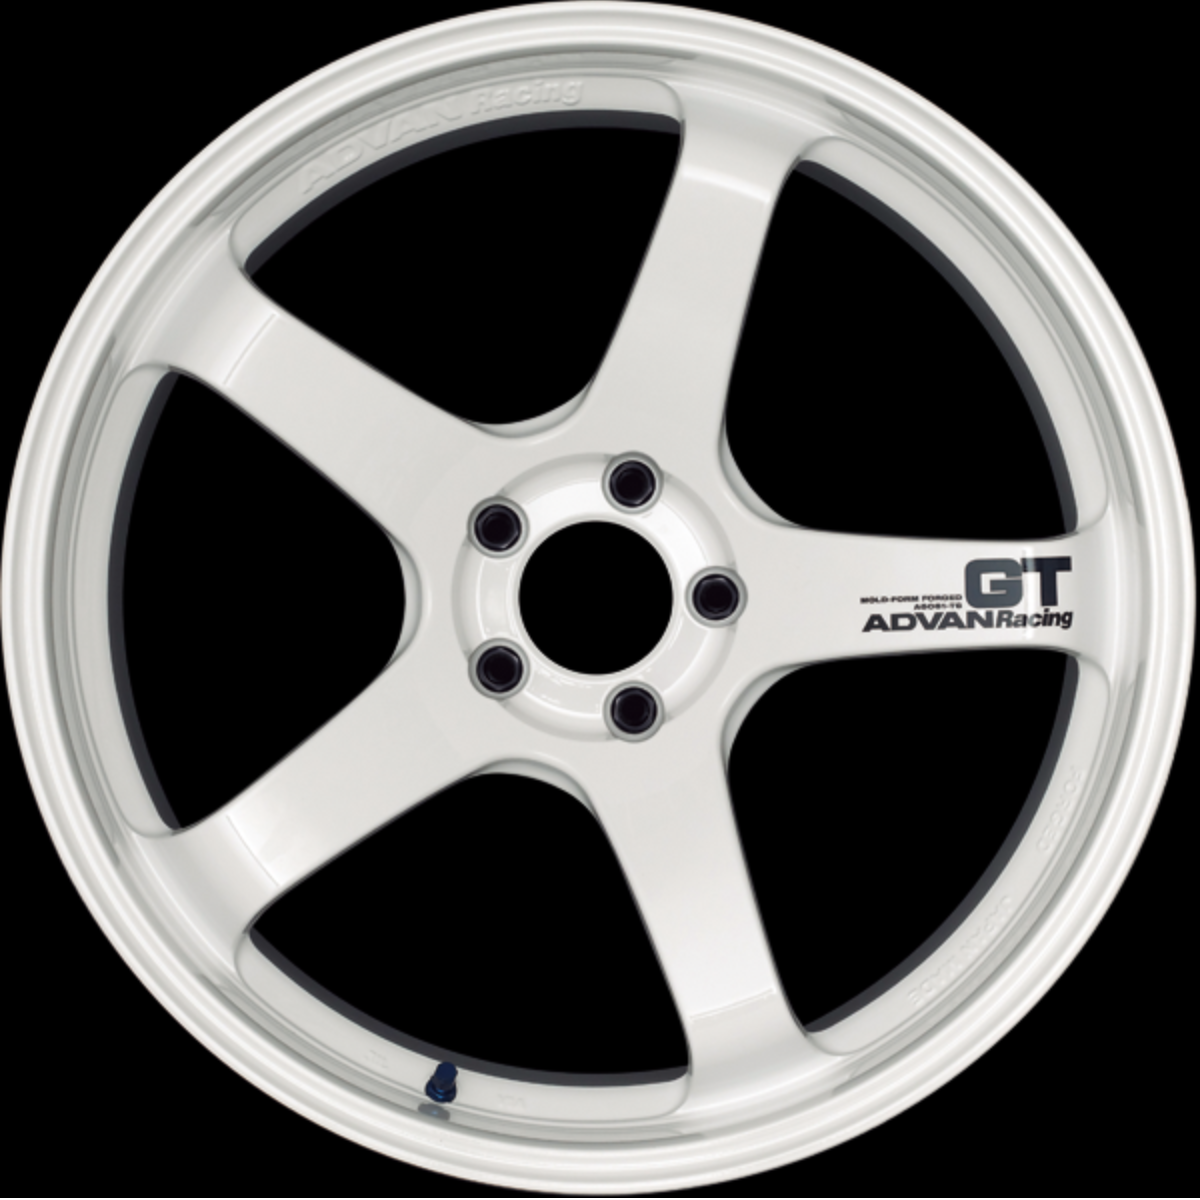 [Set of 4] YOKOHAMA ADVAN Racing GT 20x10.0J +35 5x114.3 RACING WHITE